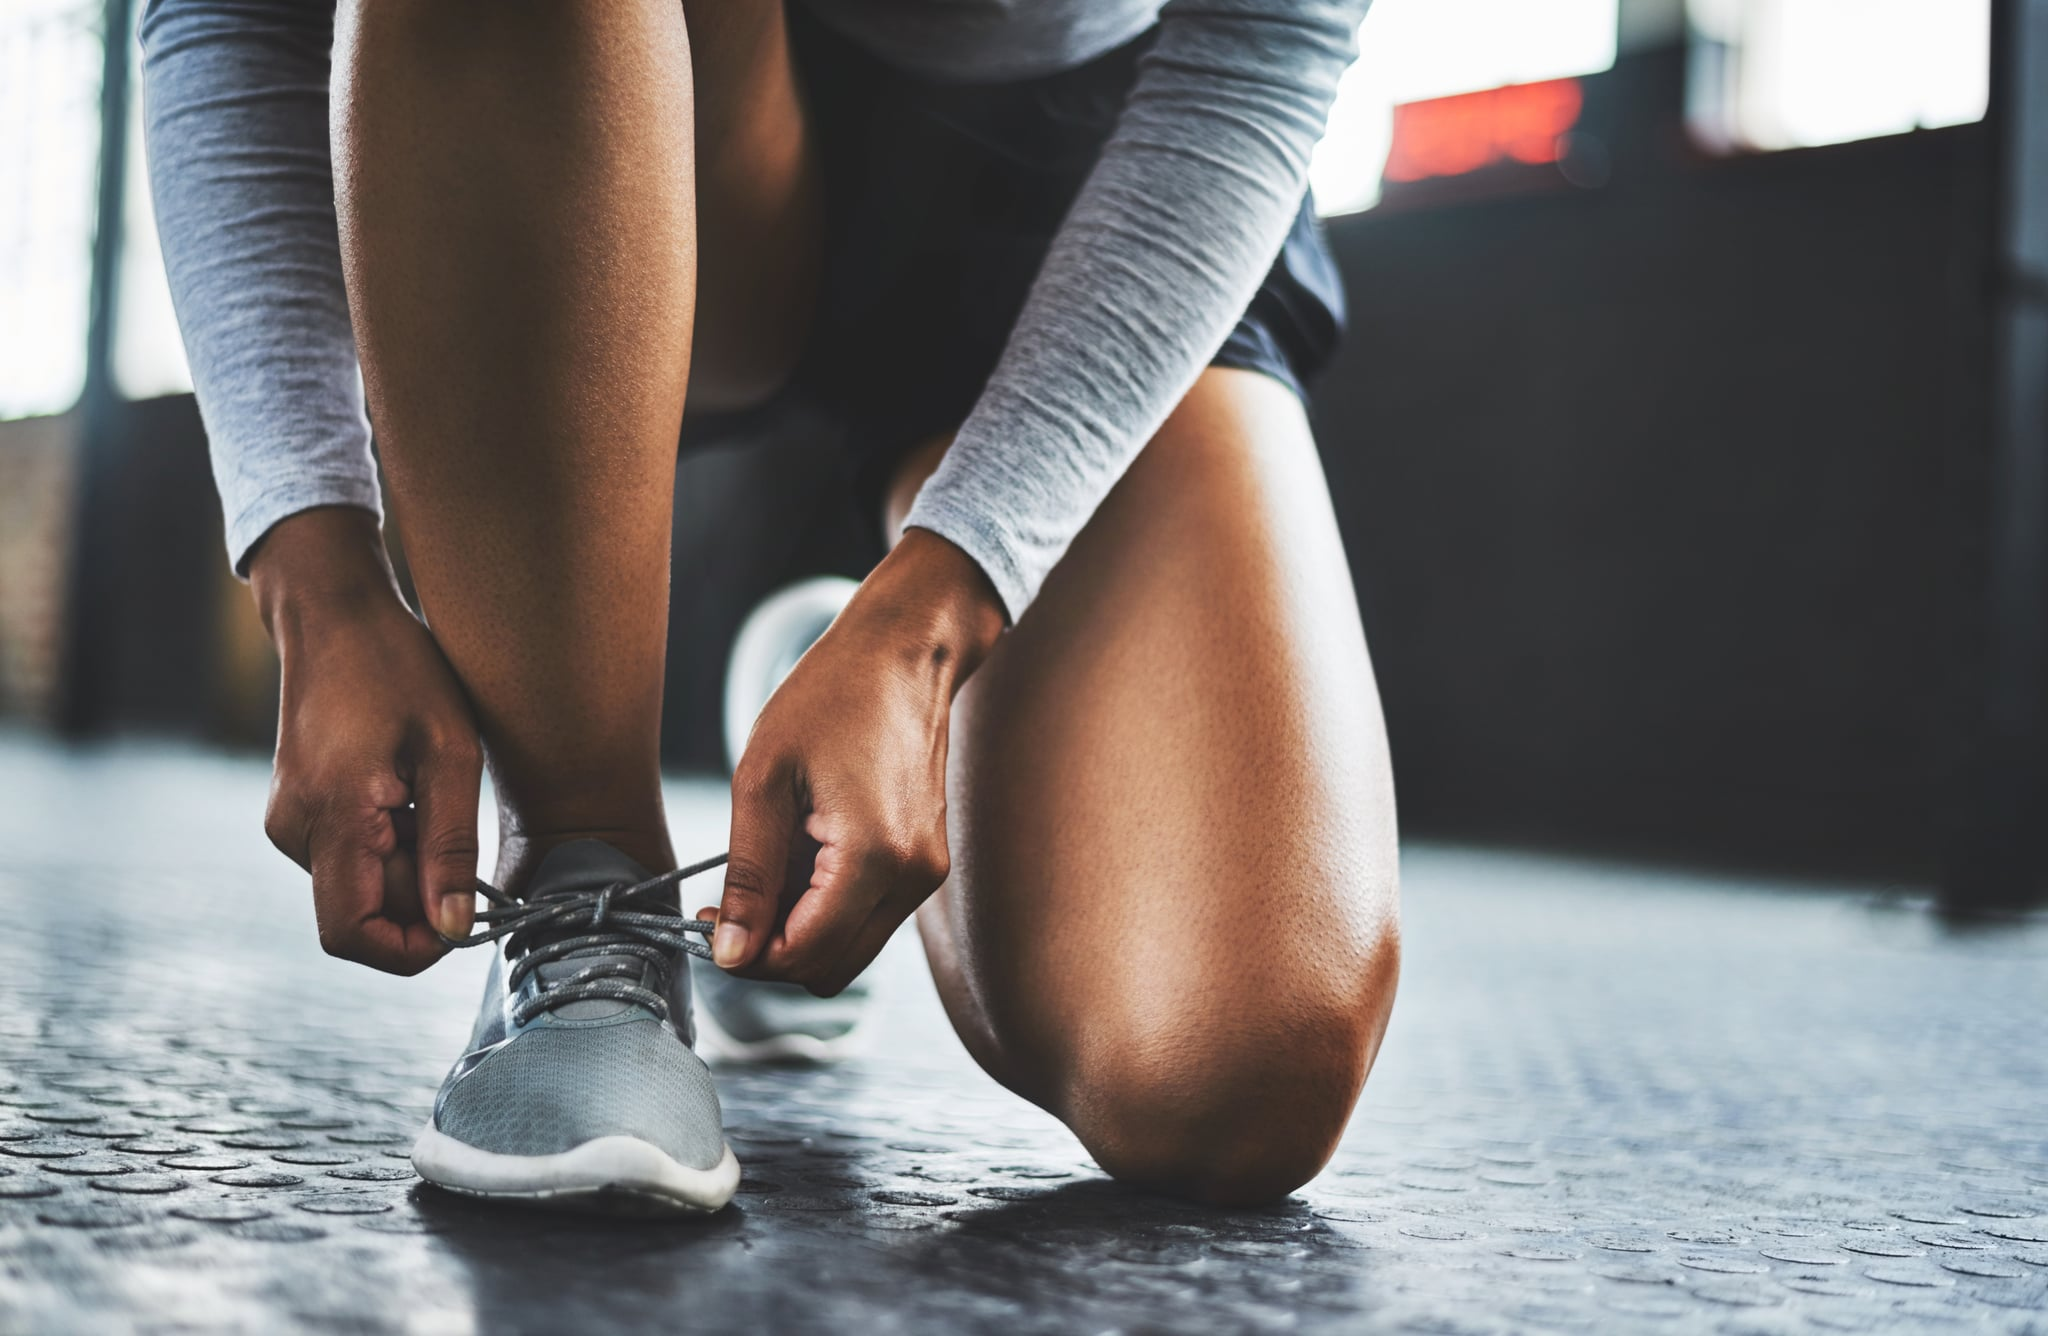 Cropped shot of a woman tying her shoelaces in a gym